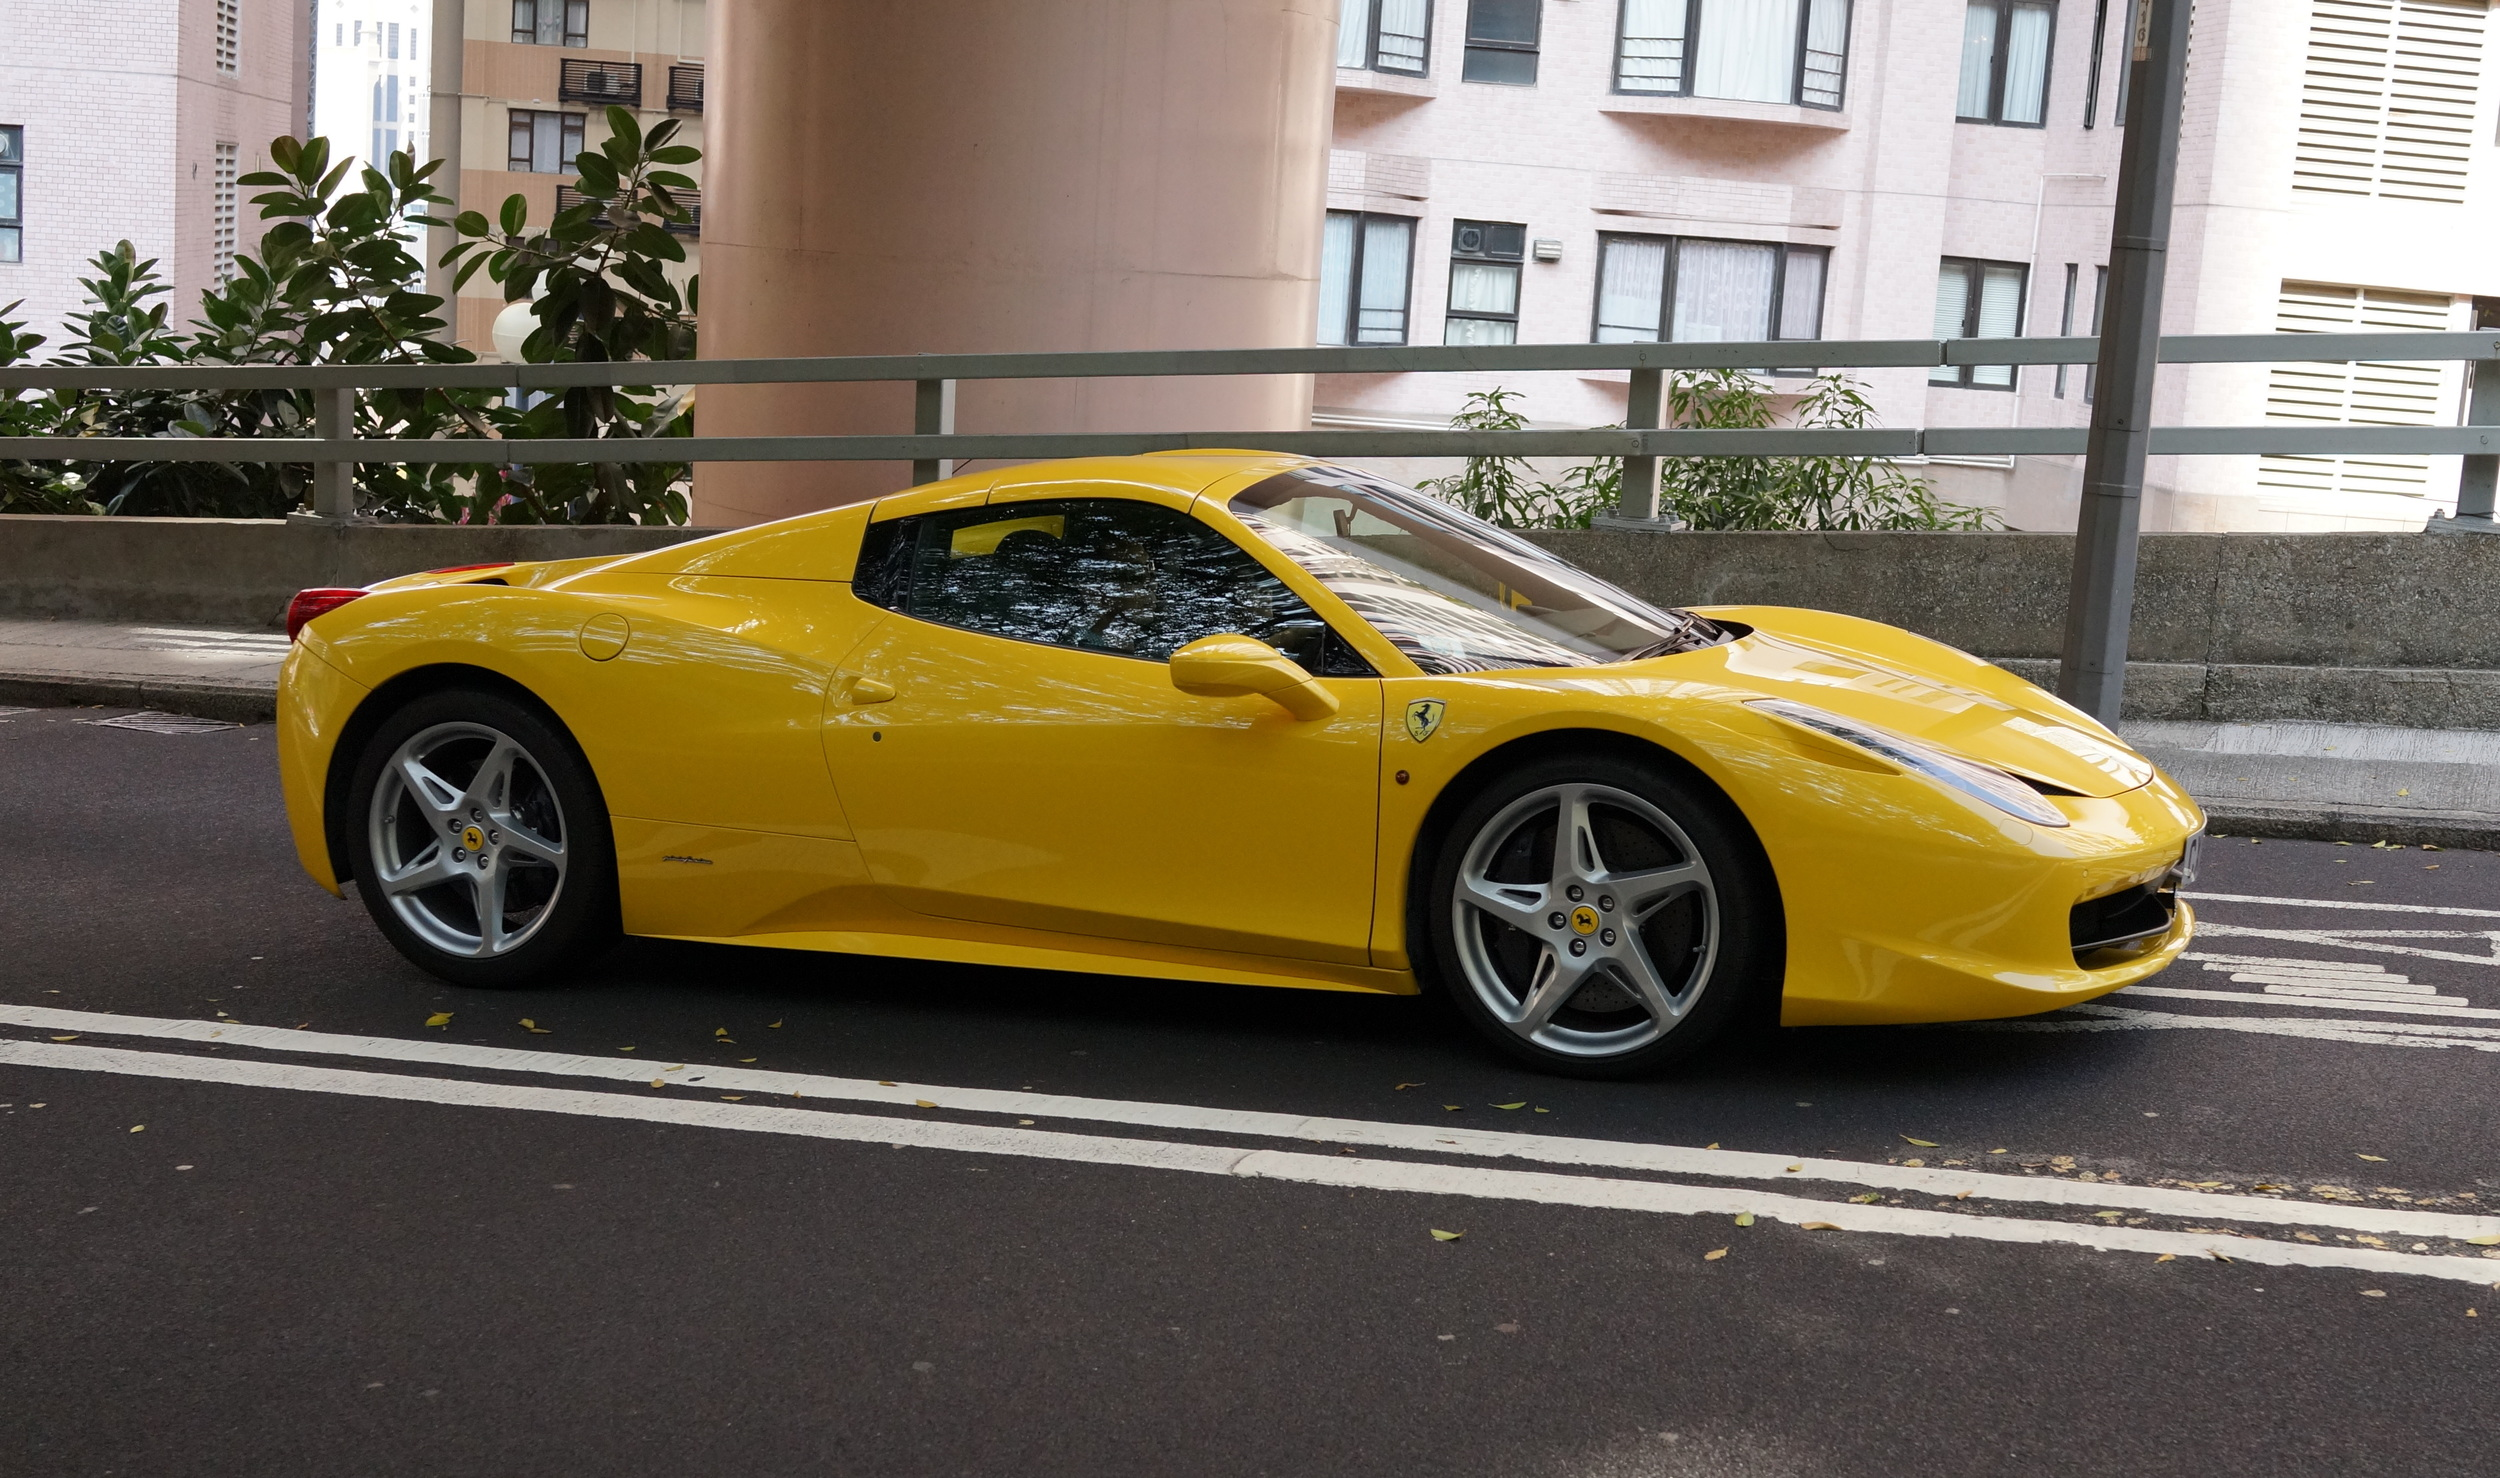 Lovely yellow Ferrari